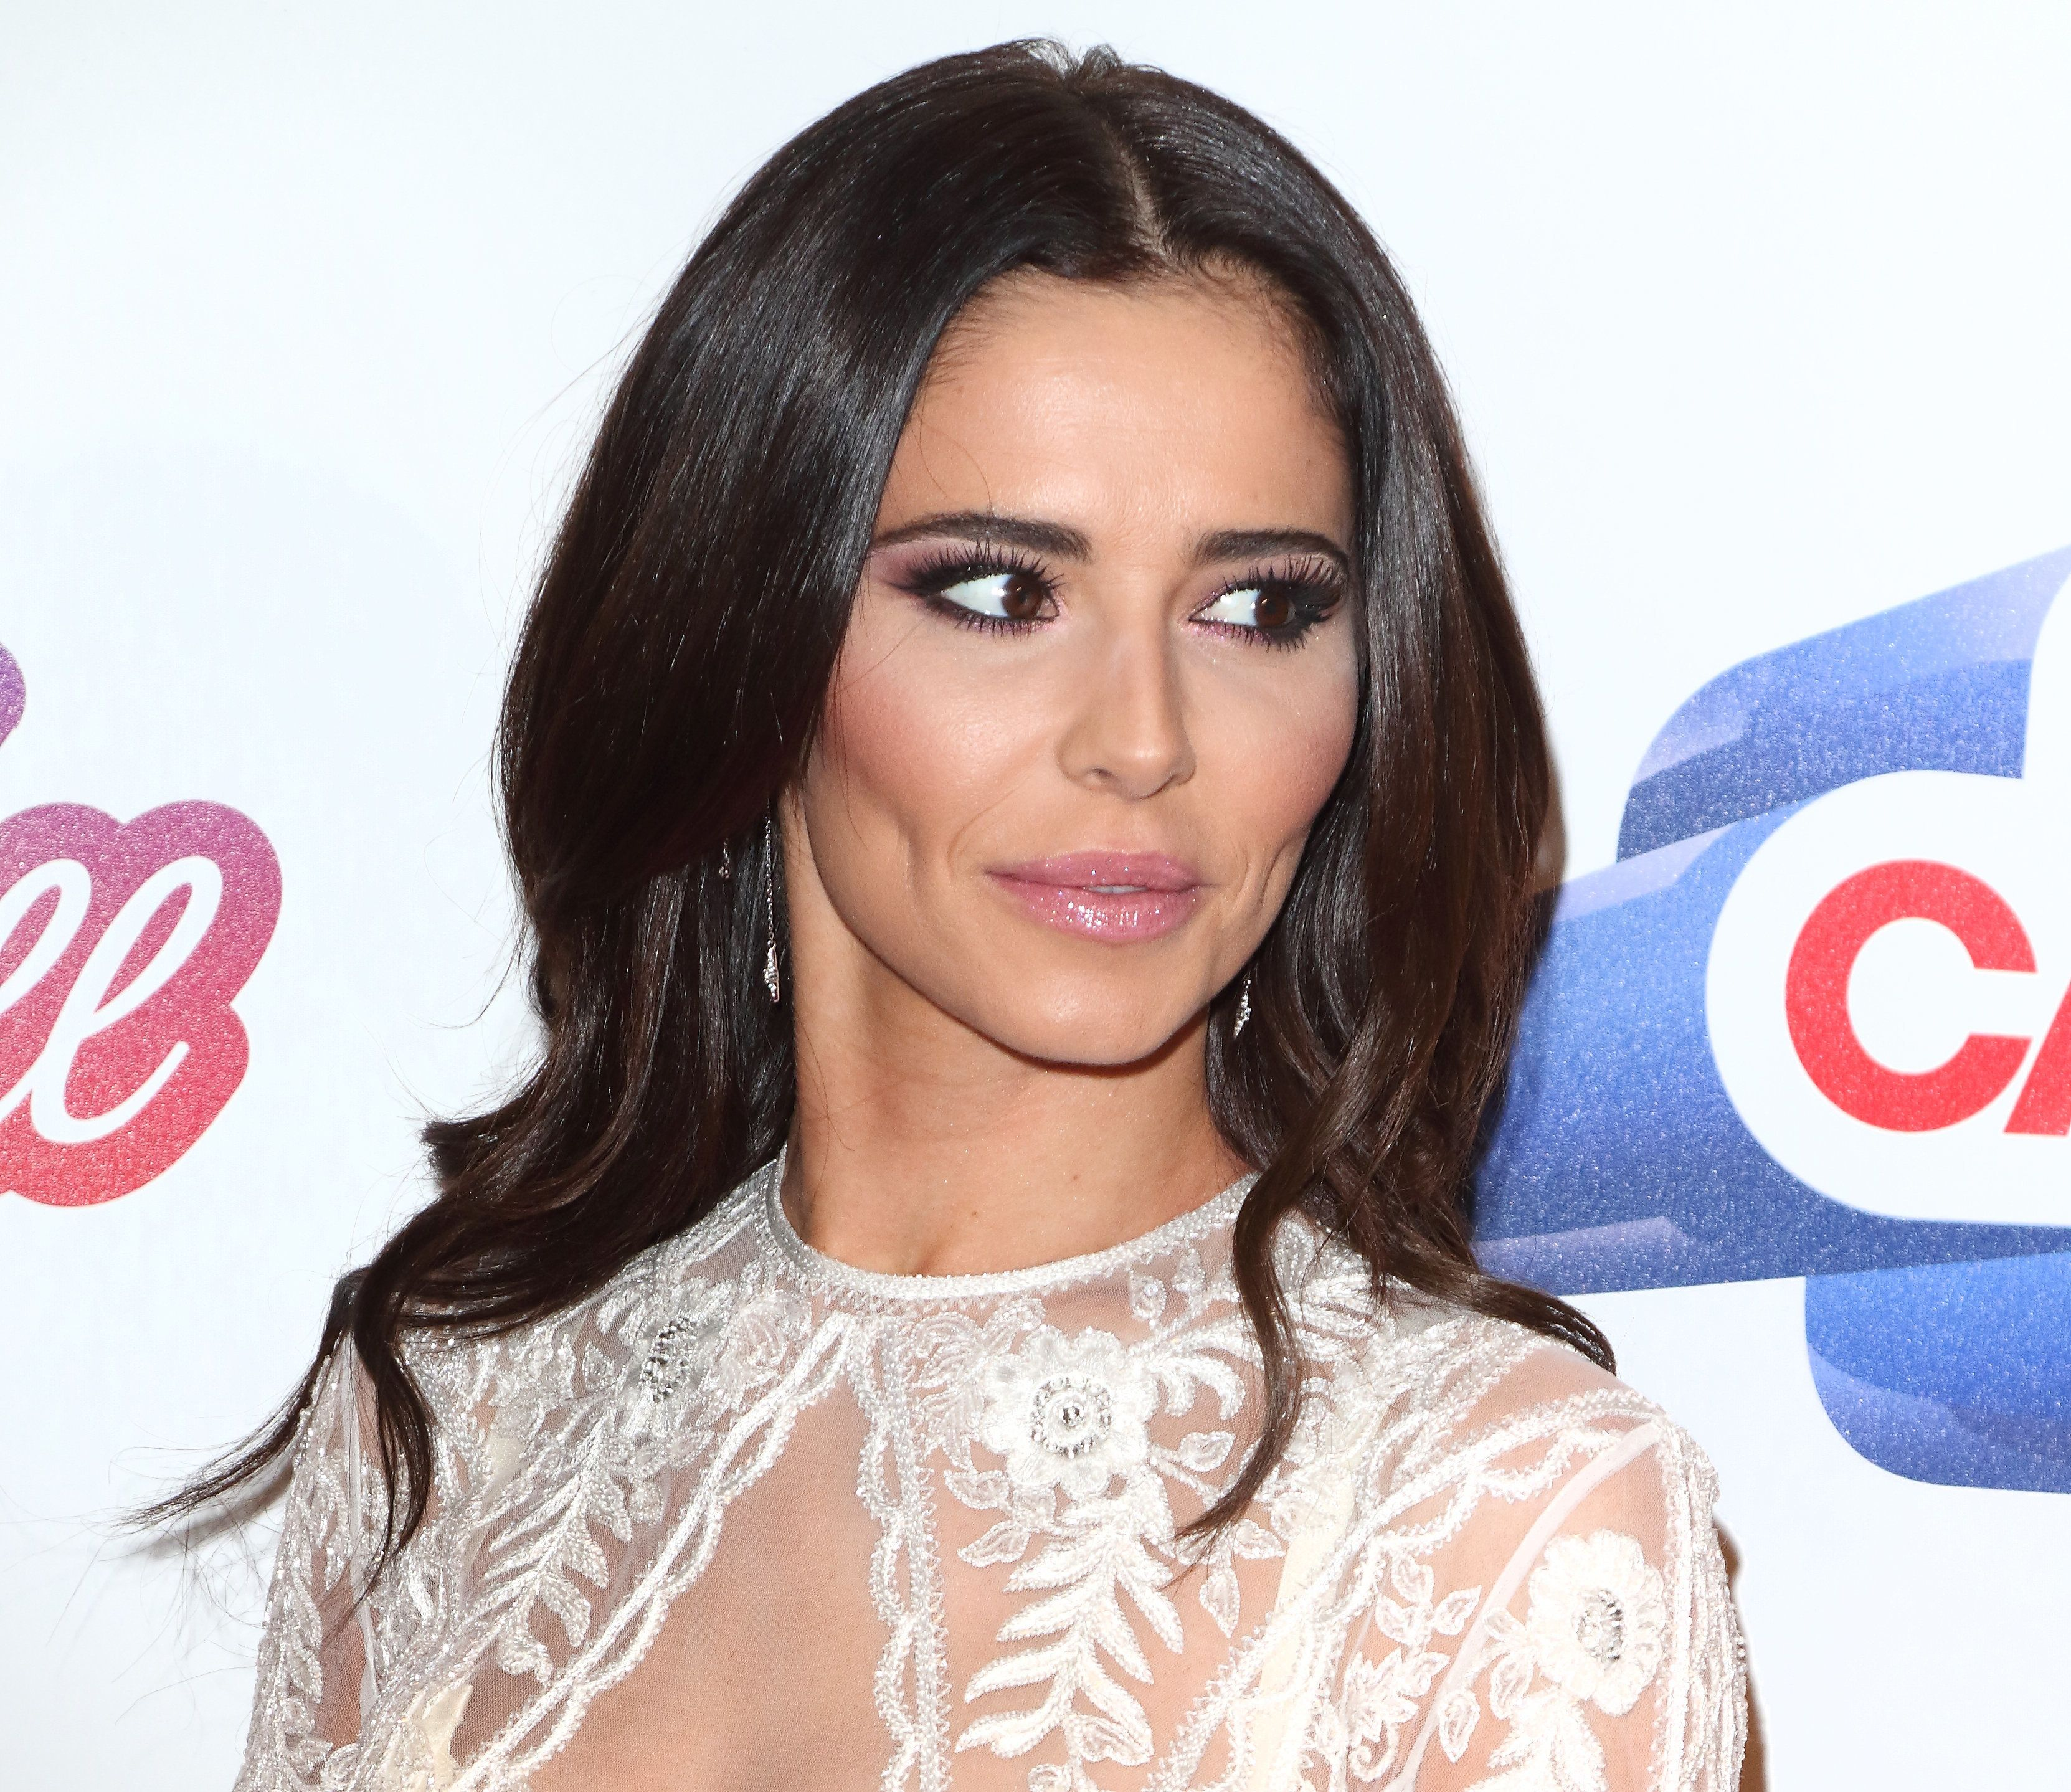 Cheryl Brands Media 'Sexist' Over Their Attempts To Pit Her Against Oti